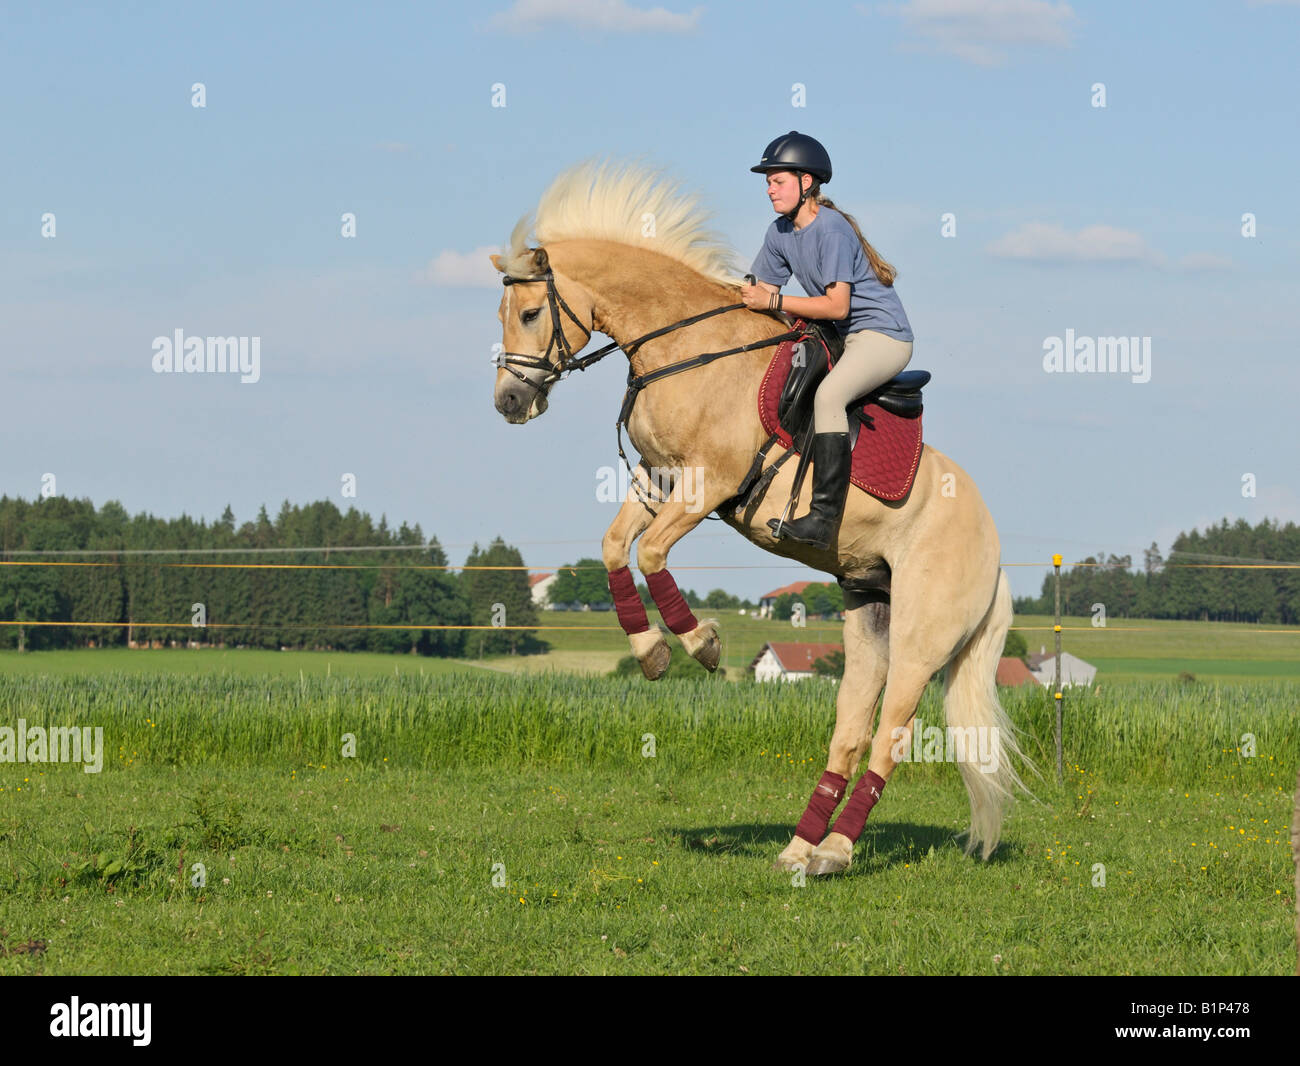 Girl Riding Horse Wallpaper Young Rider On Back Of A Rearing And Bucking Haflinger